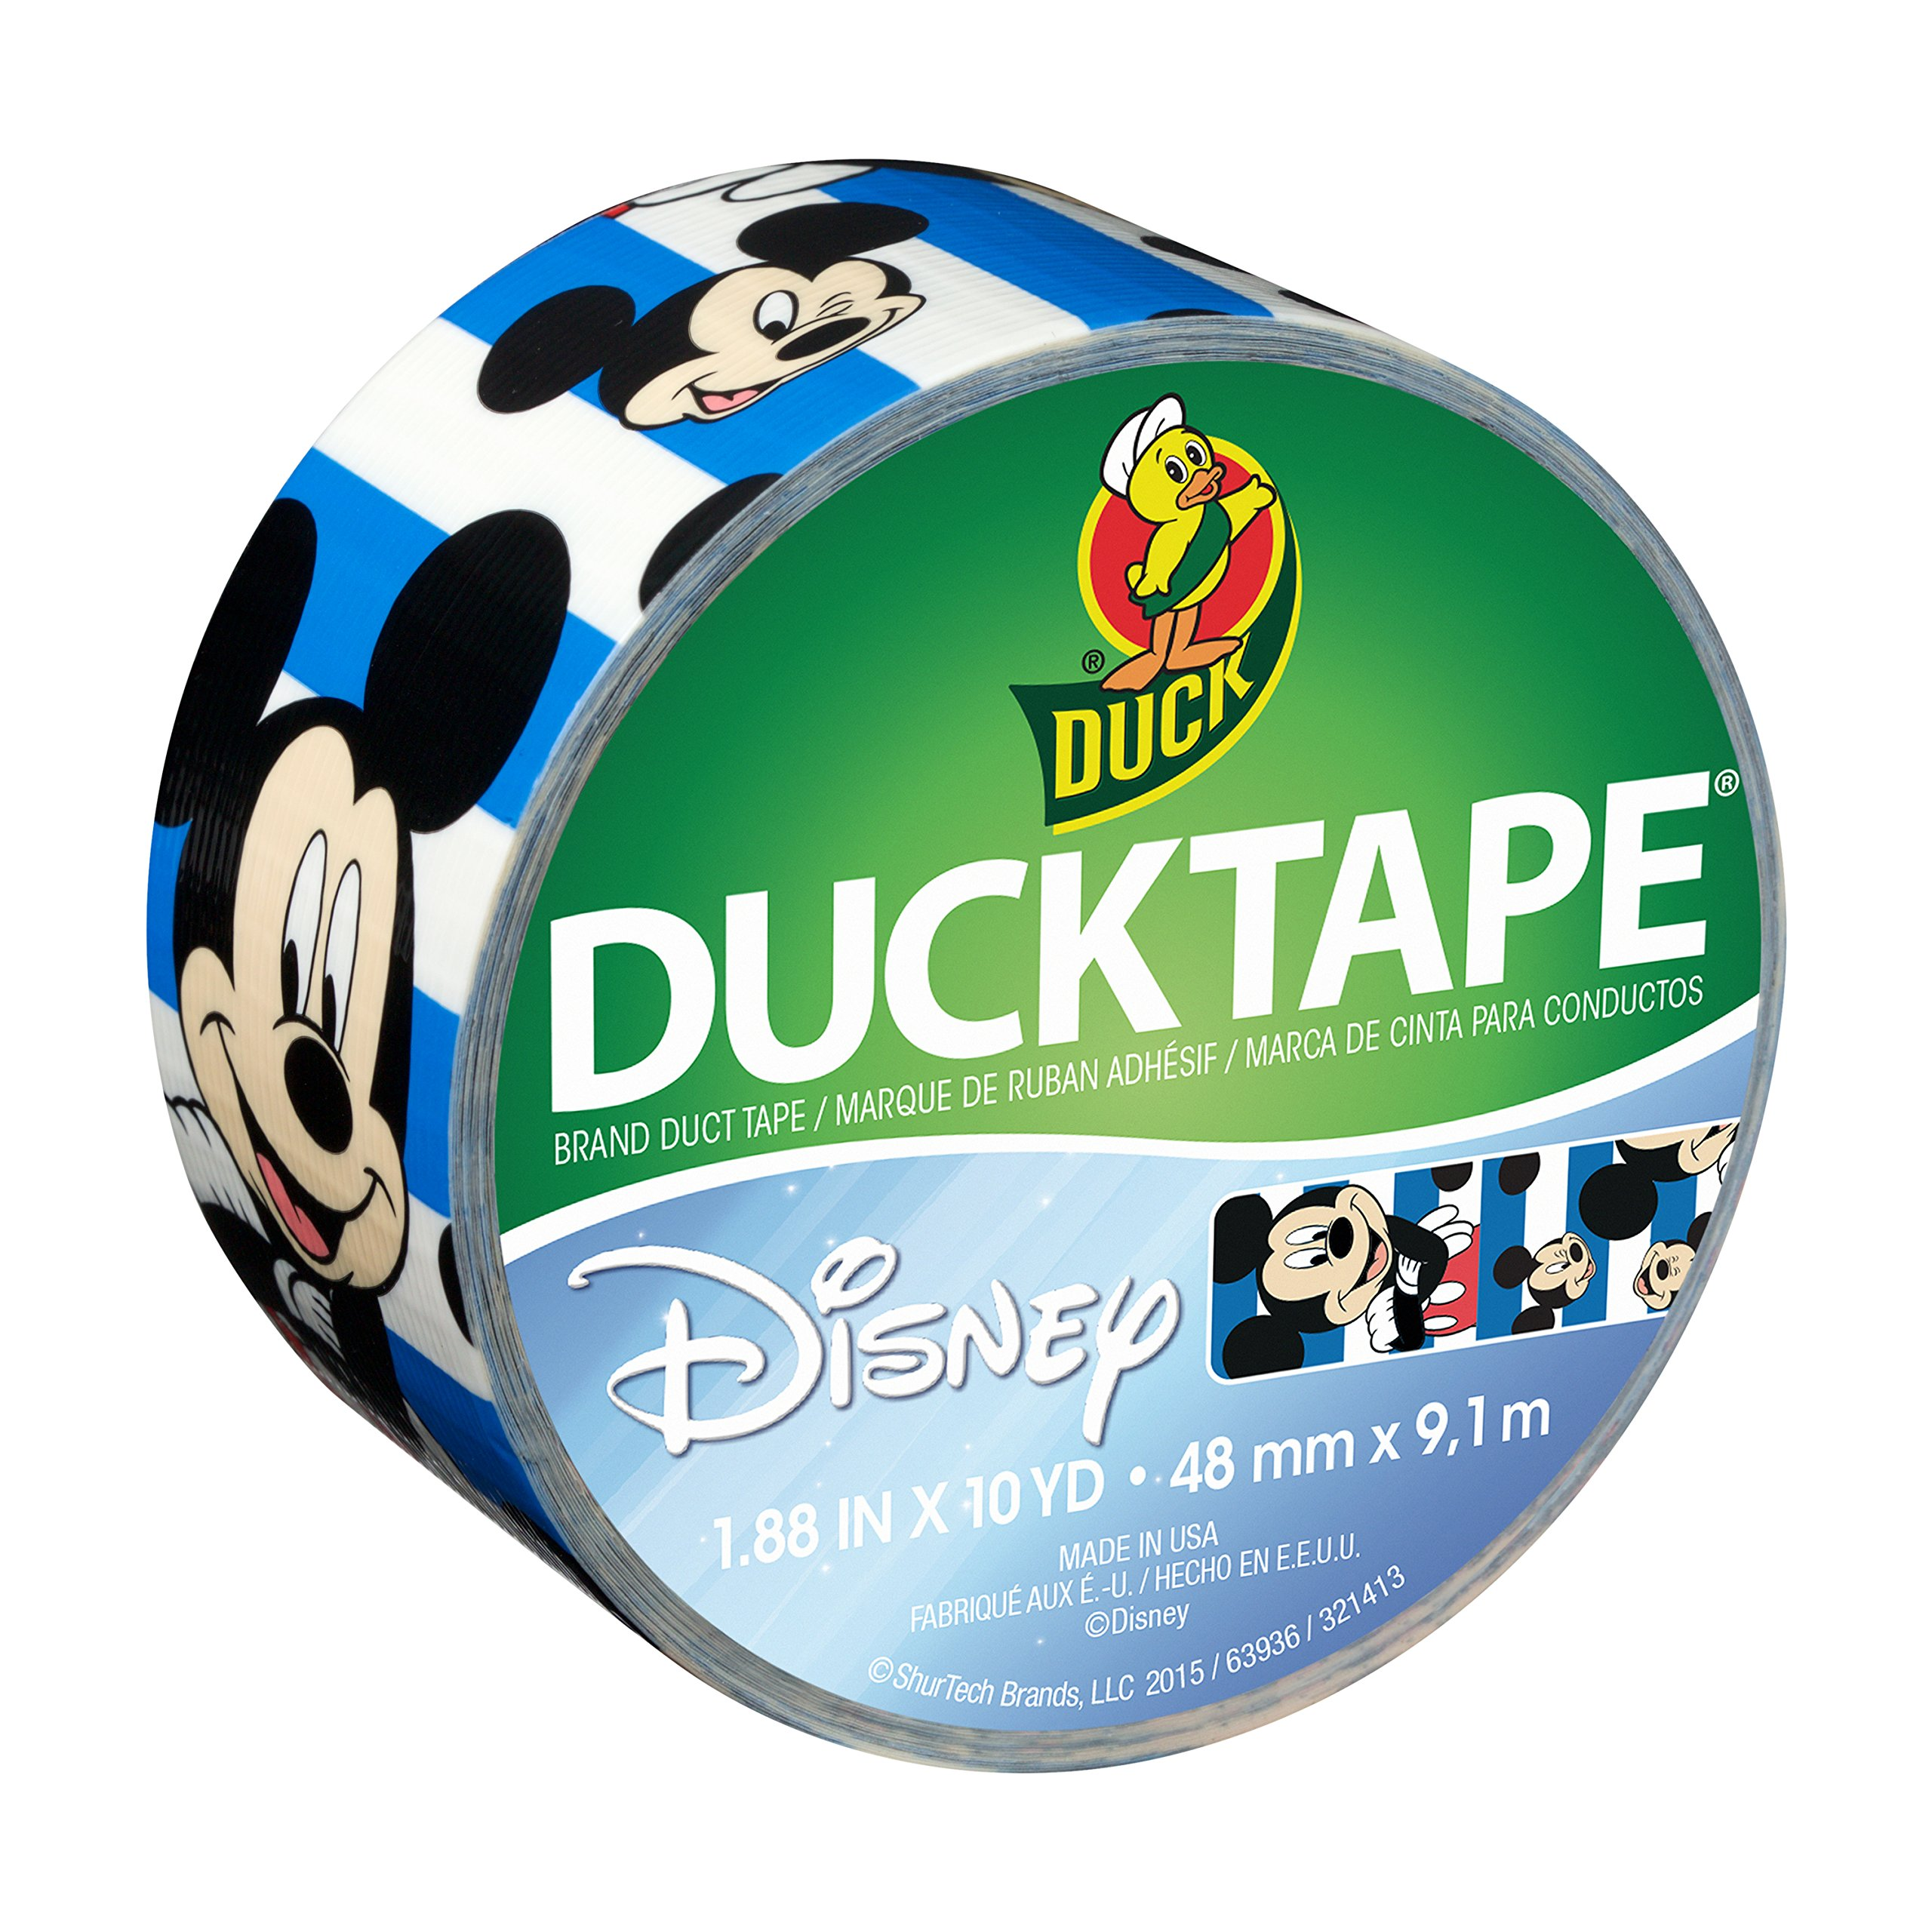 Duck Brand 284703 Disney-Licensed Mickey Mouse Printed Duct Tape with Blue Stripes, 1.88 Inches x 10 Yards, Single Roll by Duck